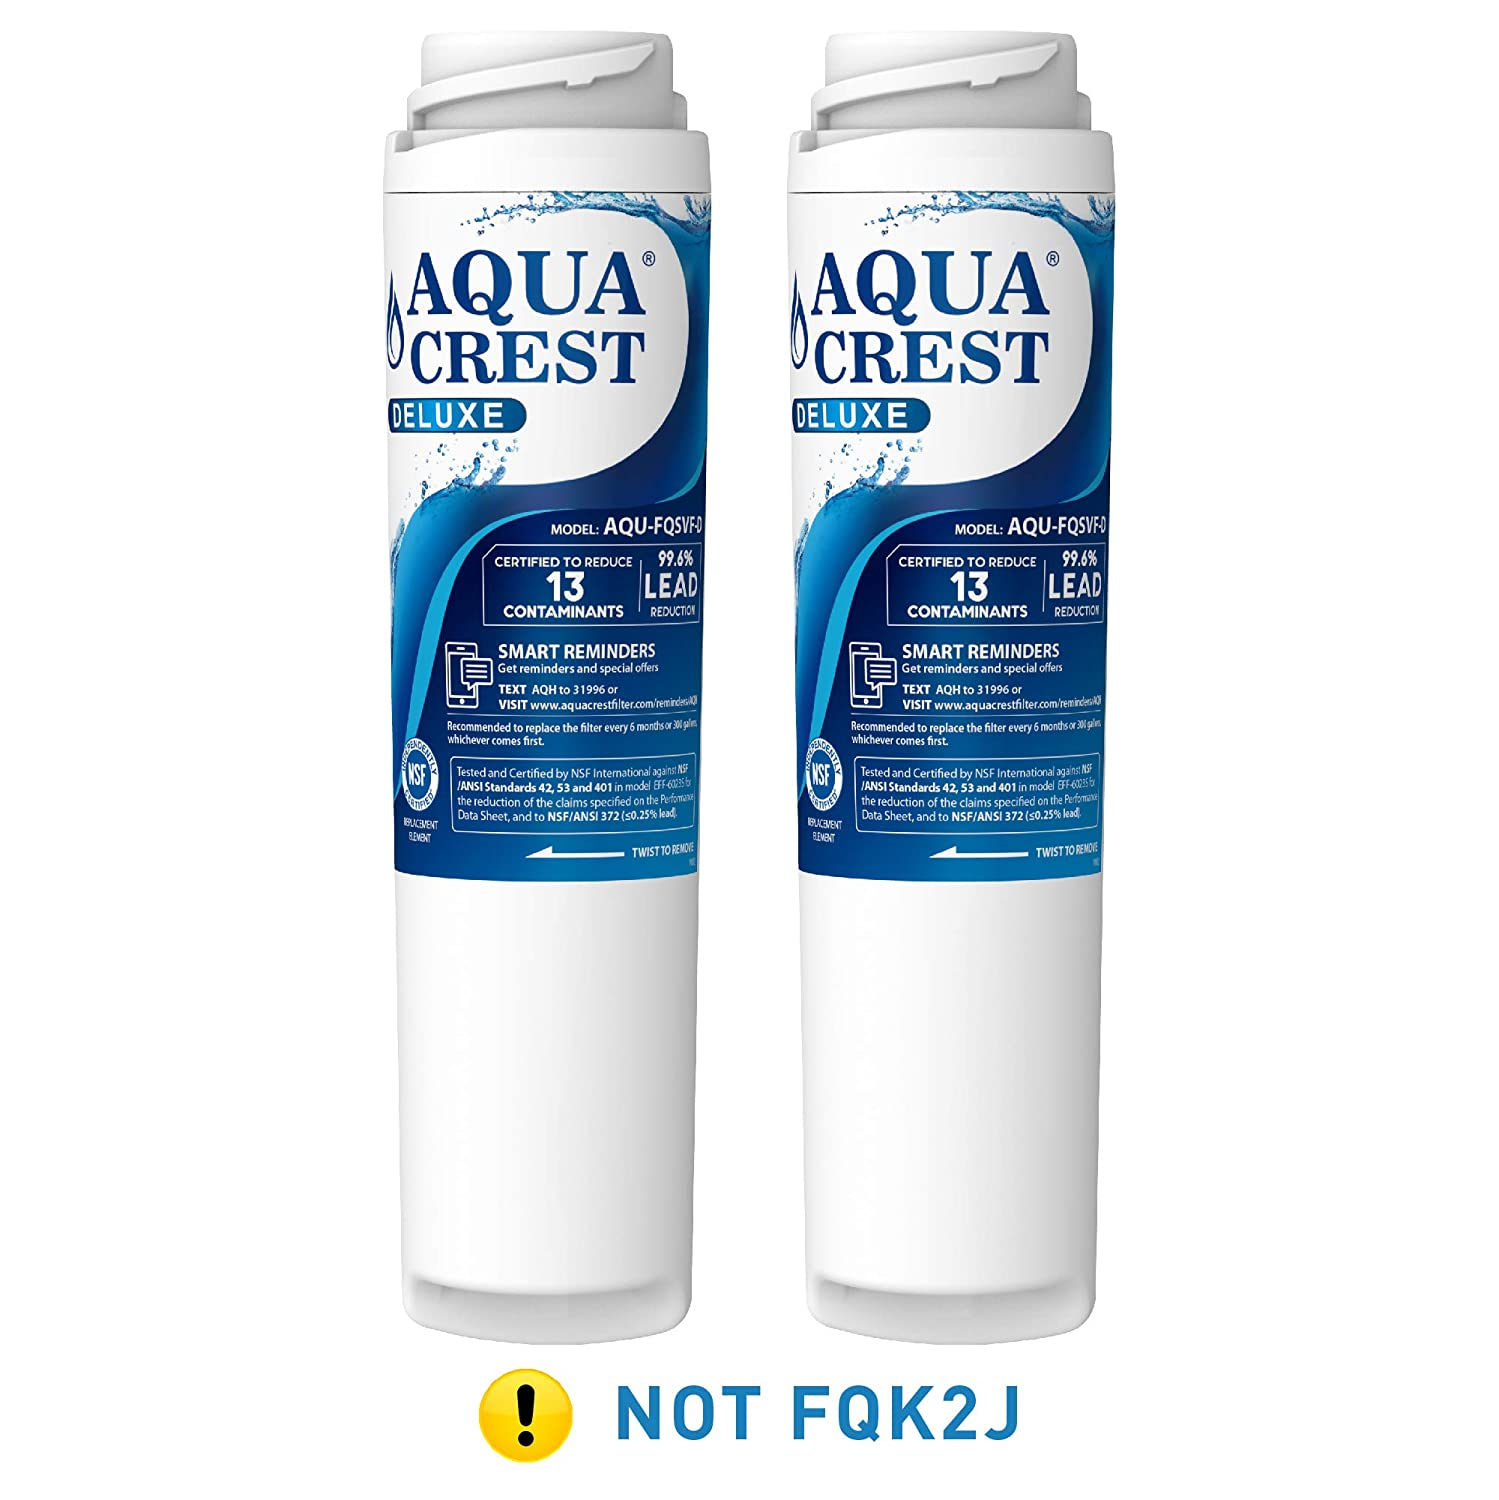 AQUACREST FQSVF NSF 401,53&42 Certified to Reduces Lead, Chlorine, Taste & Odor, Cyst, Benzene and More, Compatible with GE FQSVF, GXSV65R (1 Set)